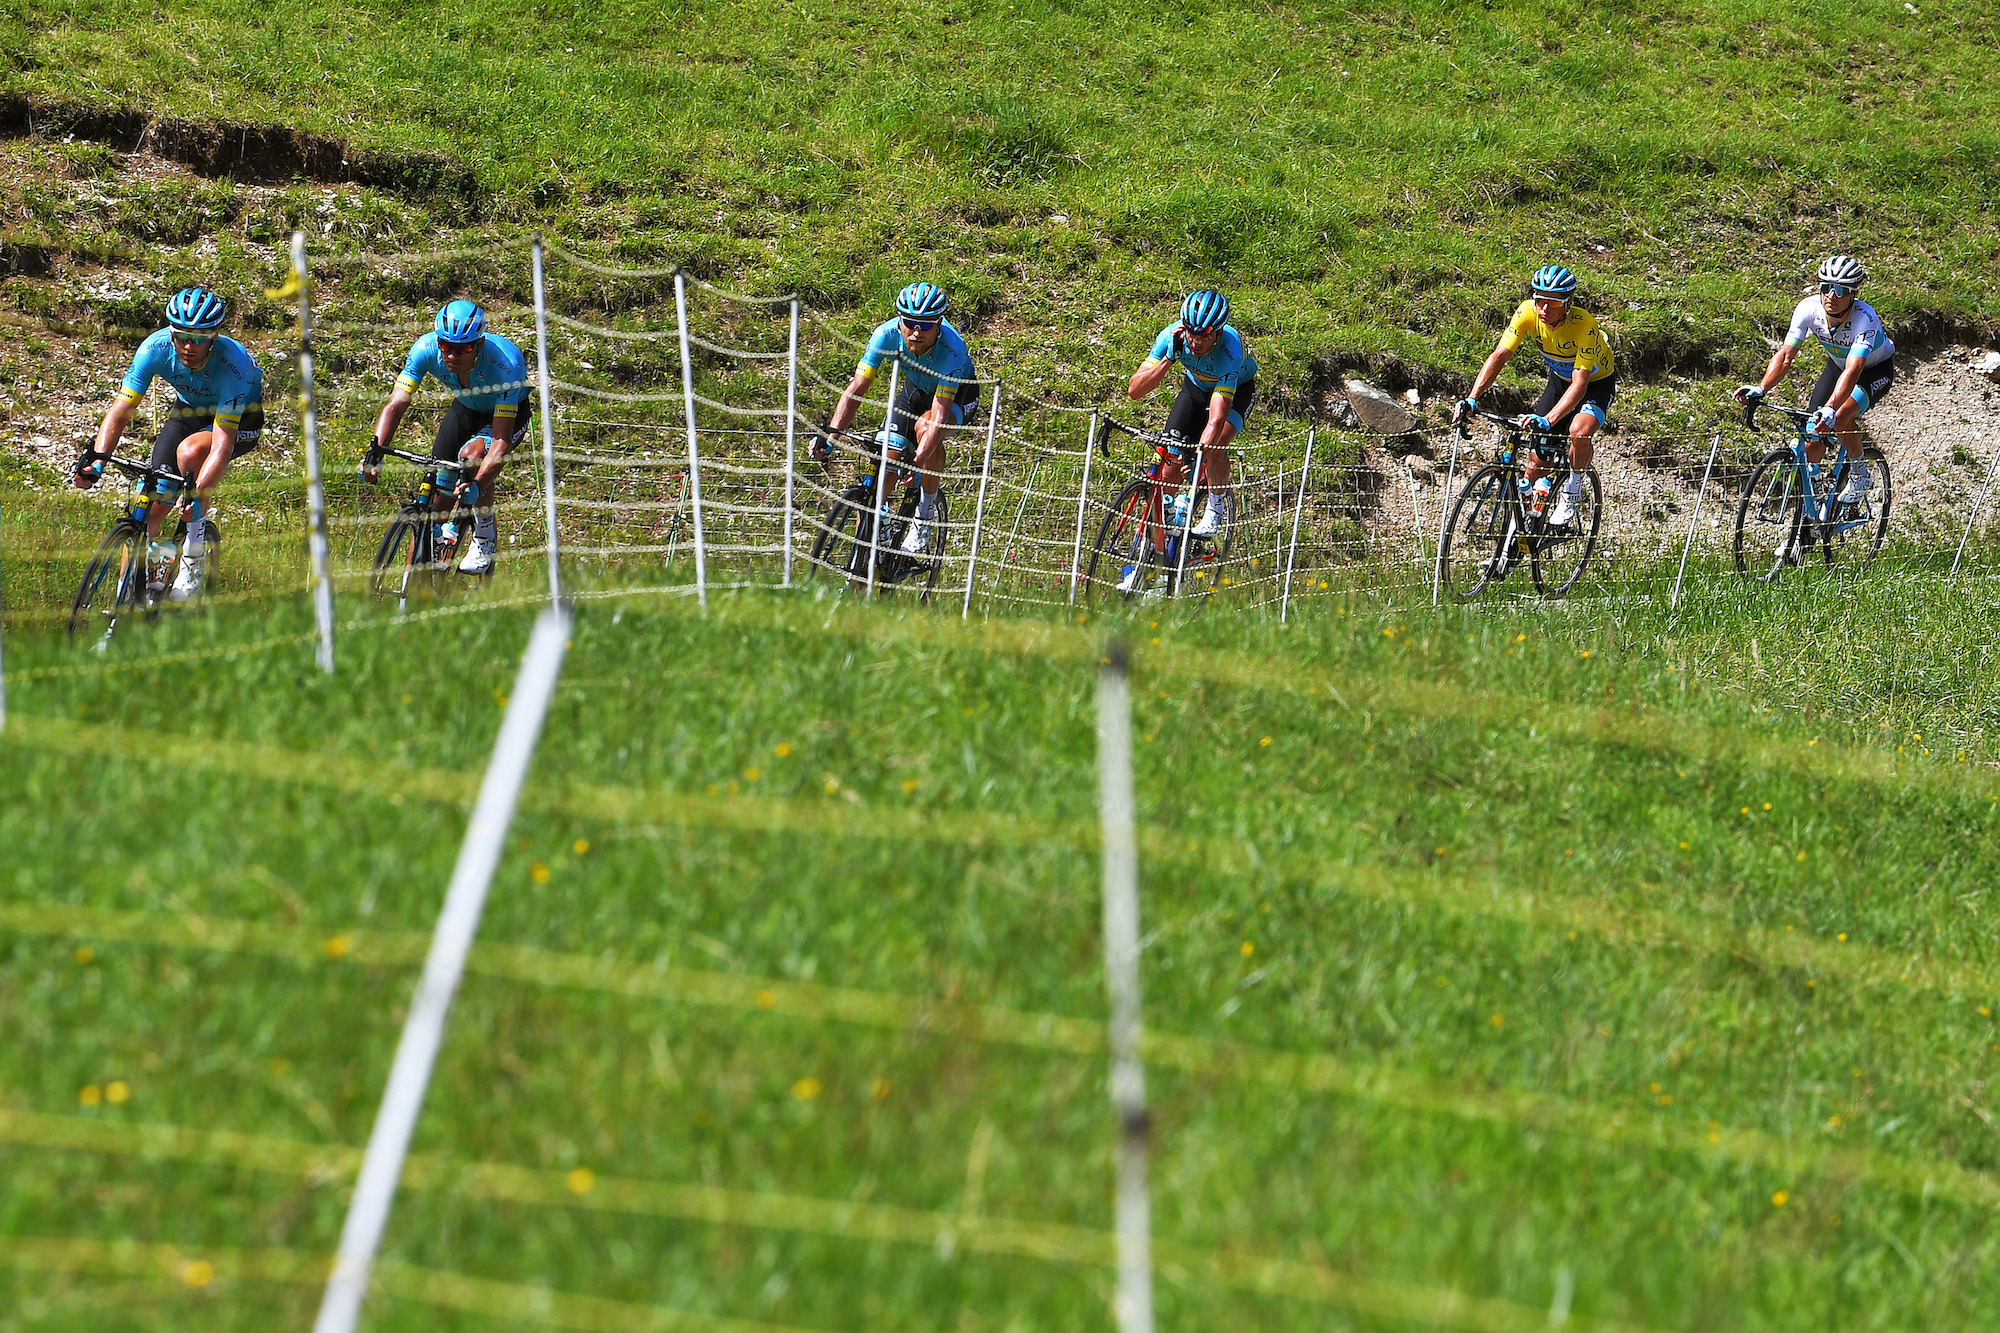 Critérium du Dauphiné 2020 start list: Froome, Alaphilippe, Bernal and Landa go head to head - Cycling Weekly